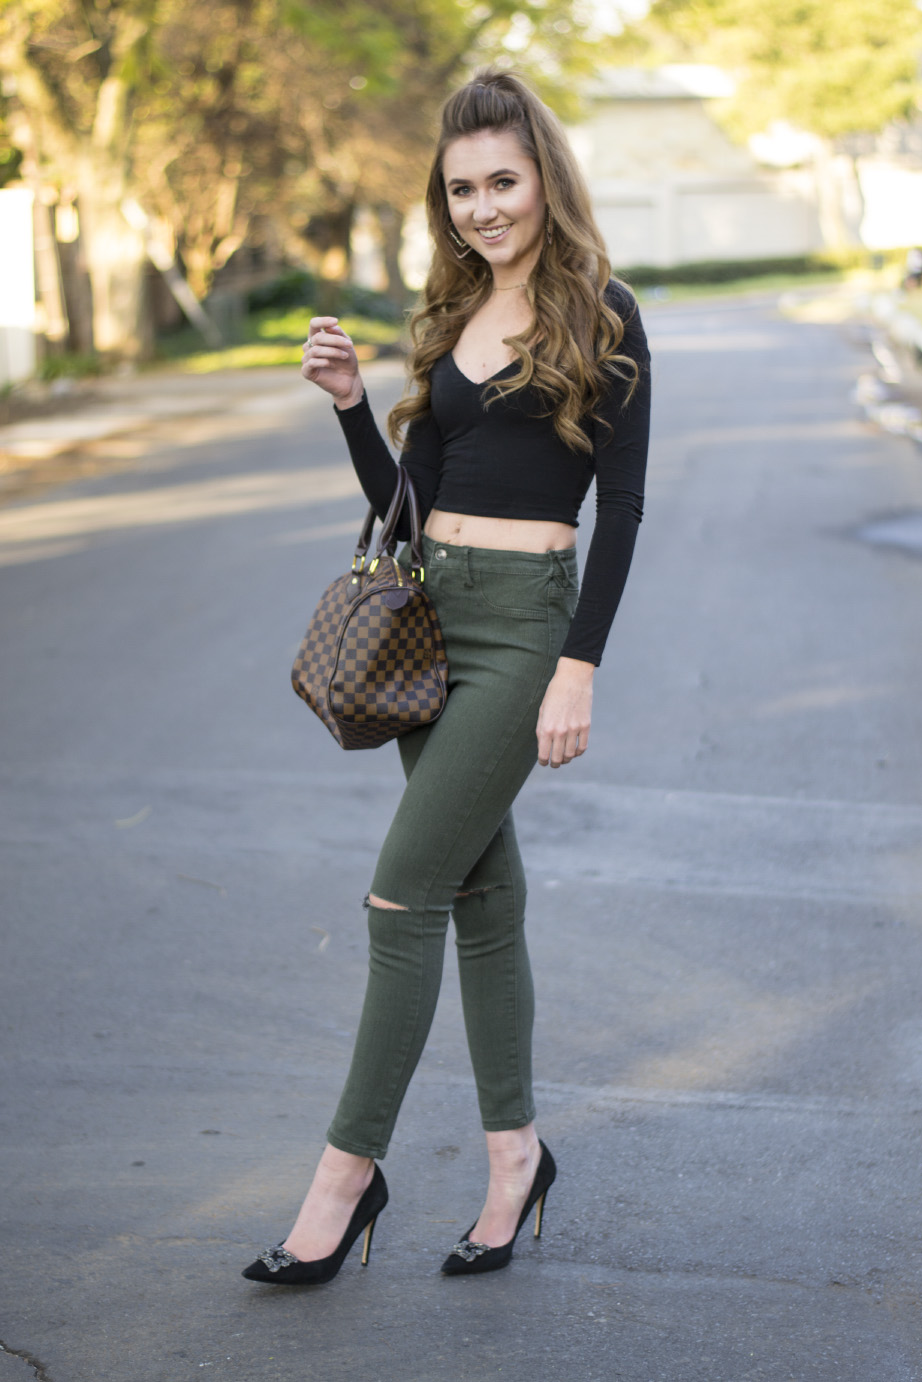 high waist jeans with crop top 1-modern-and-stylish-high-waisted-jeans-and-. crop top ... KEWKYNQ